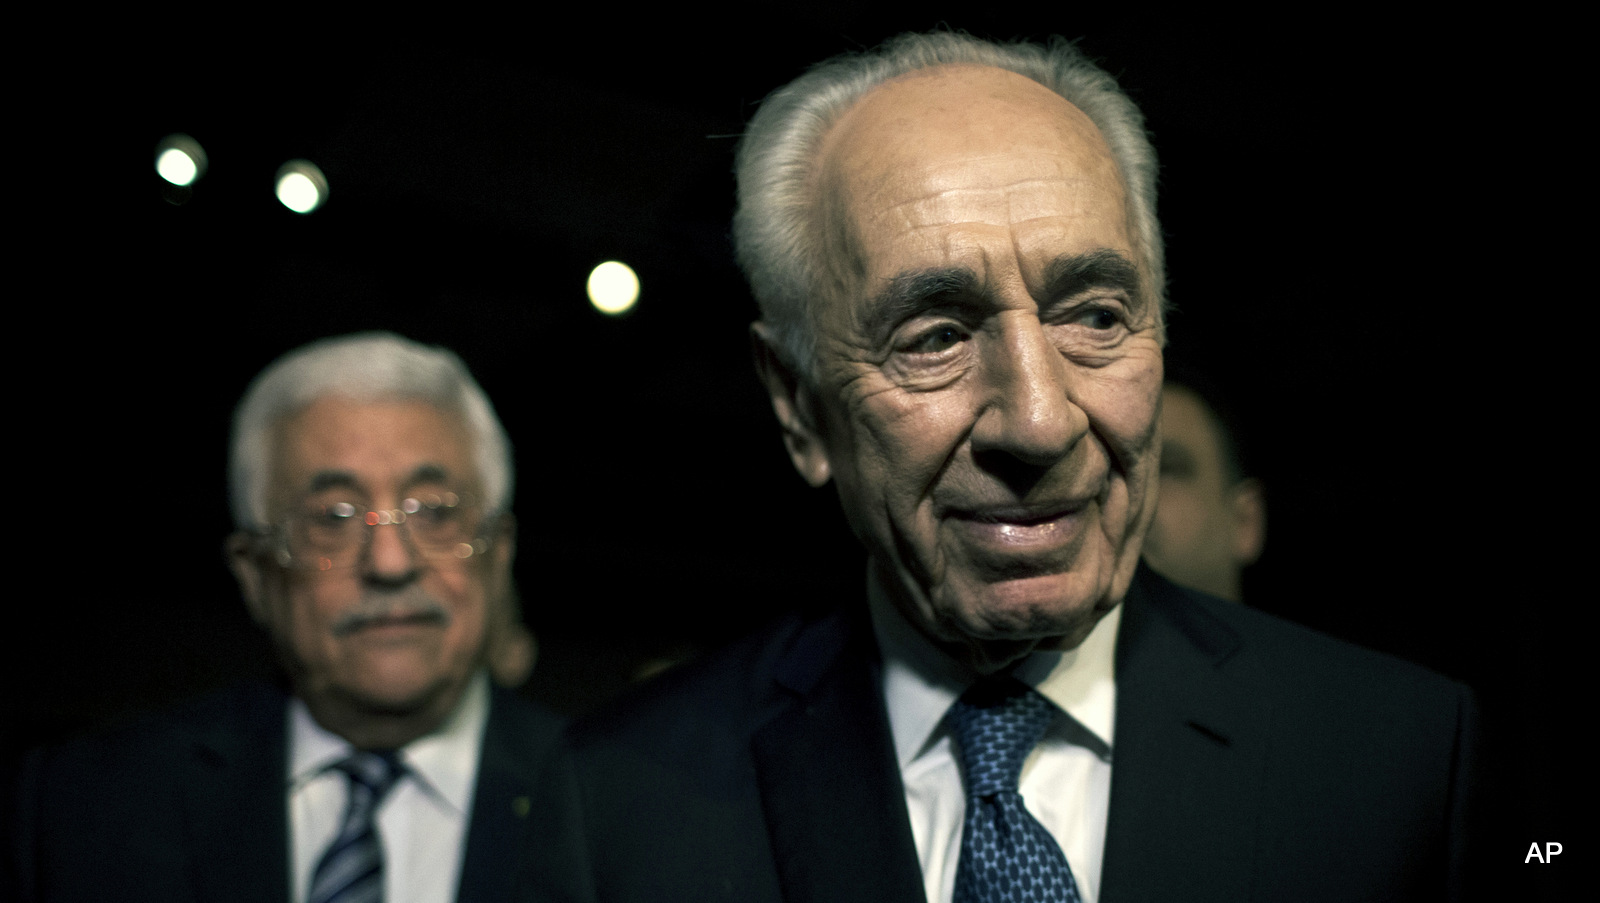 Former Israeli President Shimon Peres, right and Palestinian President Mahmoud Abbas arrive to attend the opening session of the World Economic Forum at the King Hussien convention center, Southern Shuneh, Jordan, Friday, May 22, 2015. Palestinian President Mahmoud Abbas on Friday said Israel is blocking peace by continuing to expand settlements on occupied territory, but reaffirmed his support for a two-state solution based on the pre-1967 border.